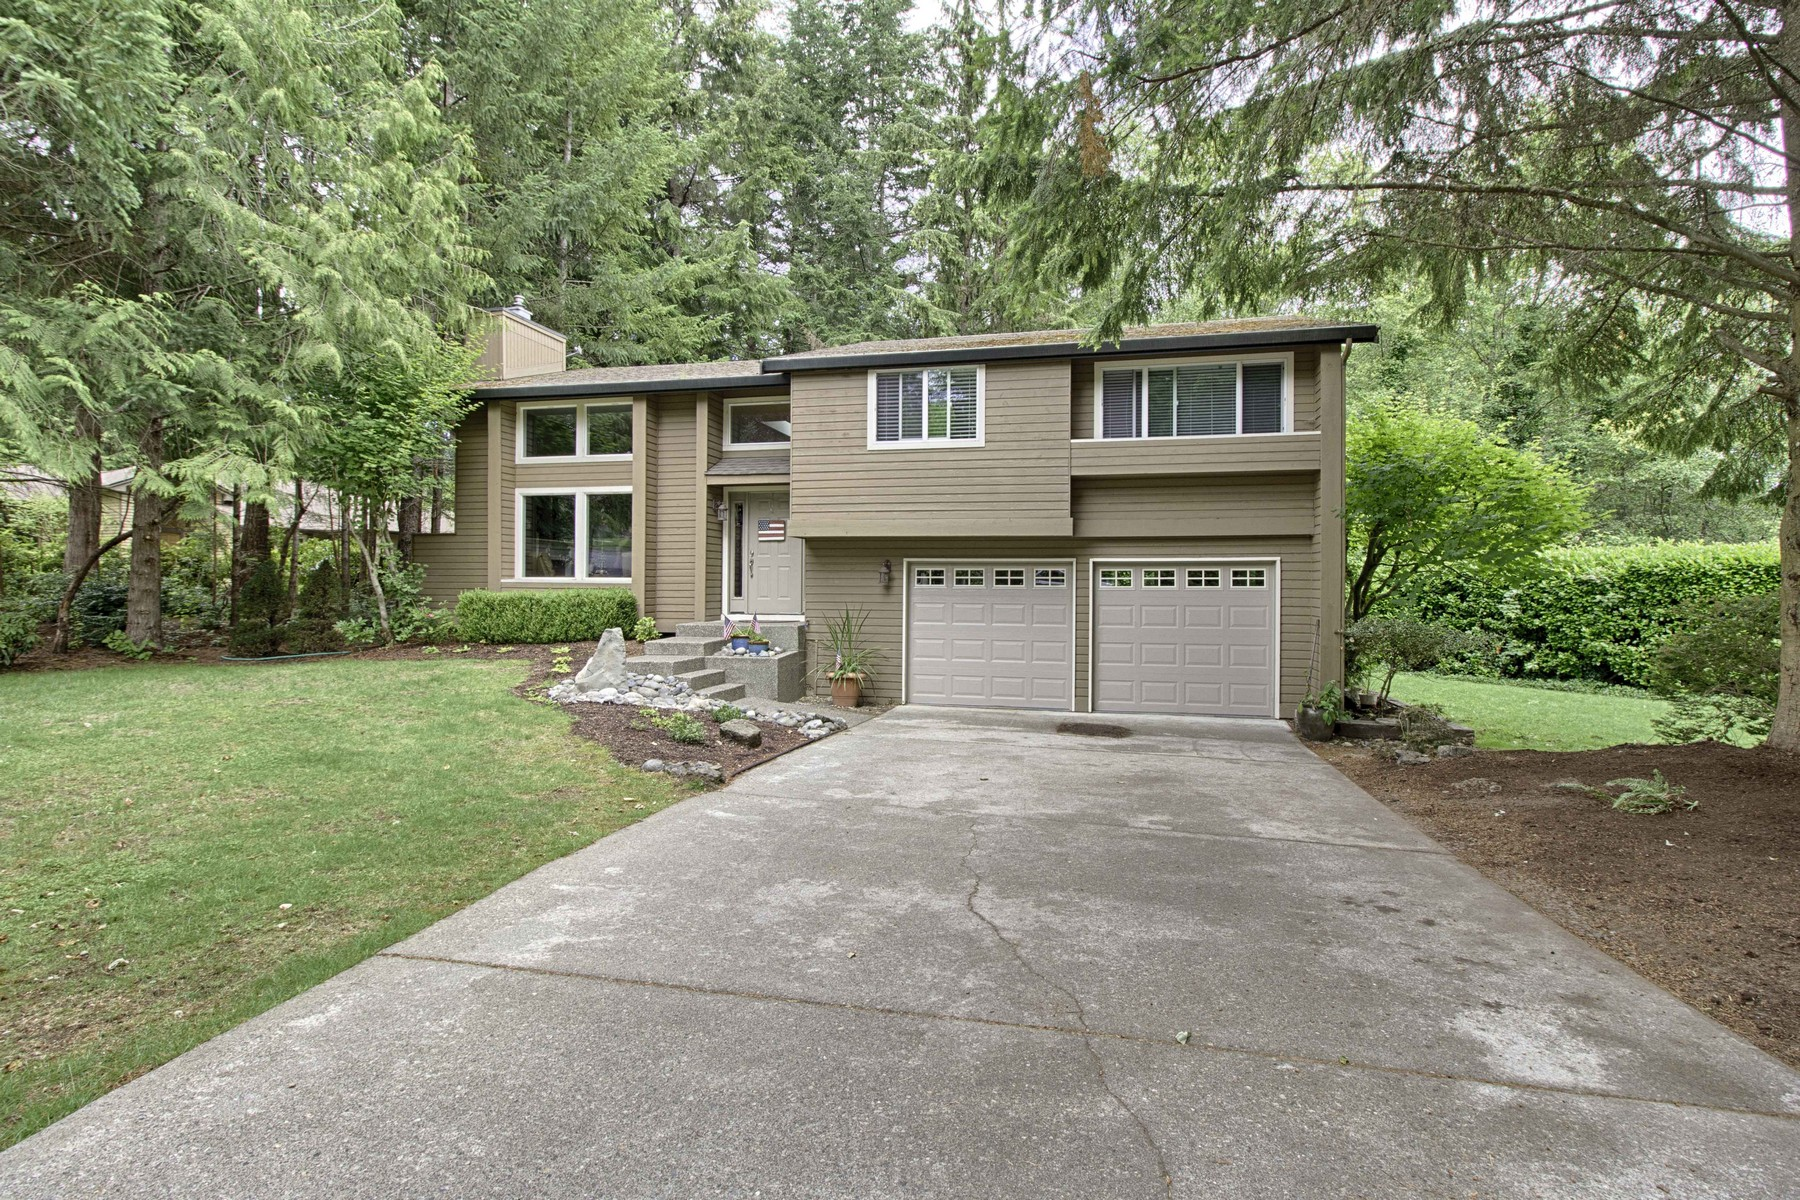 Single Family Home for Sale at Fabulous Canterwood Home 12909 44th Ave. Ct. NW Gig Harbor, Washington, 98332 United States